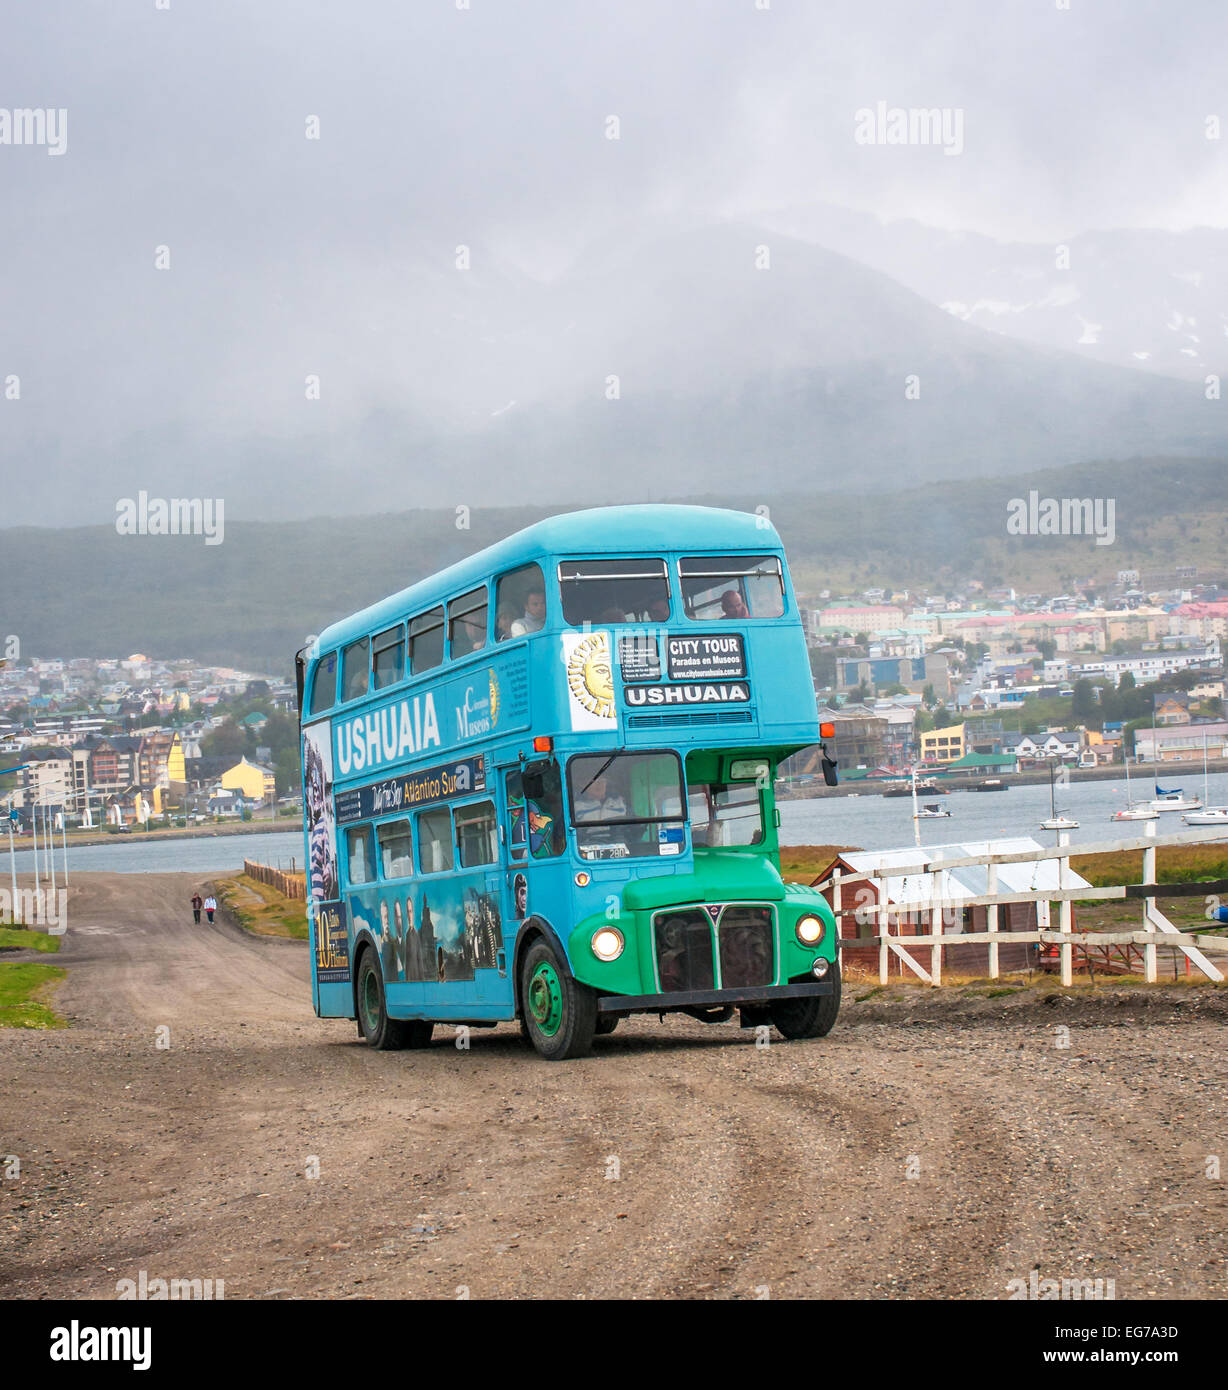 USHUAIA, ARGENTINA - March, 01: Double decker tourist bus in Usuaia, Argentina on March, 01, 2010 - Stock Image